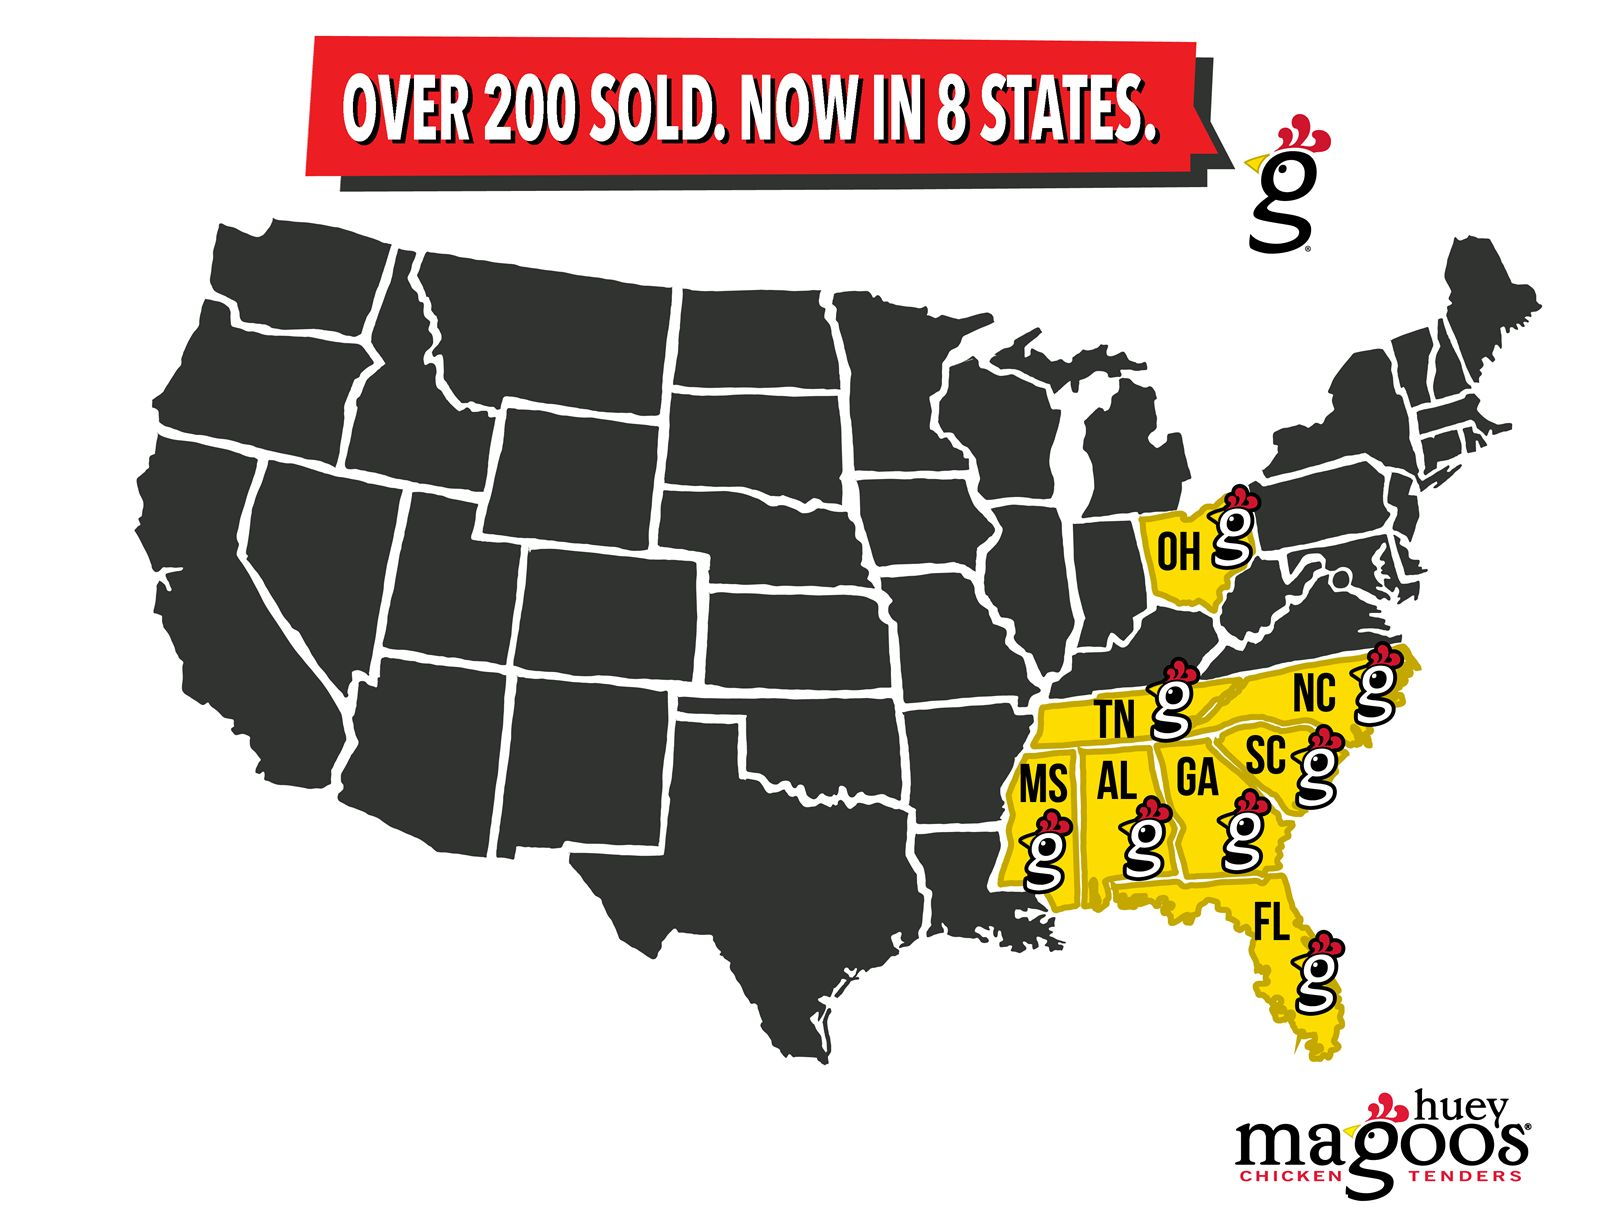 Huey Magoo's Chicken Tenders Hits 200 Franchises Sold and Restaurants in Eight States